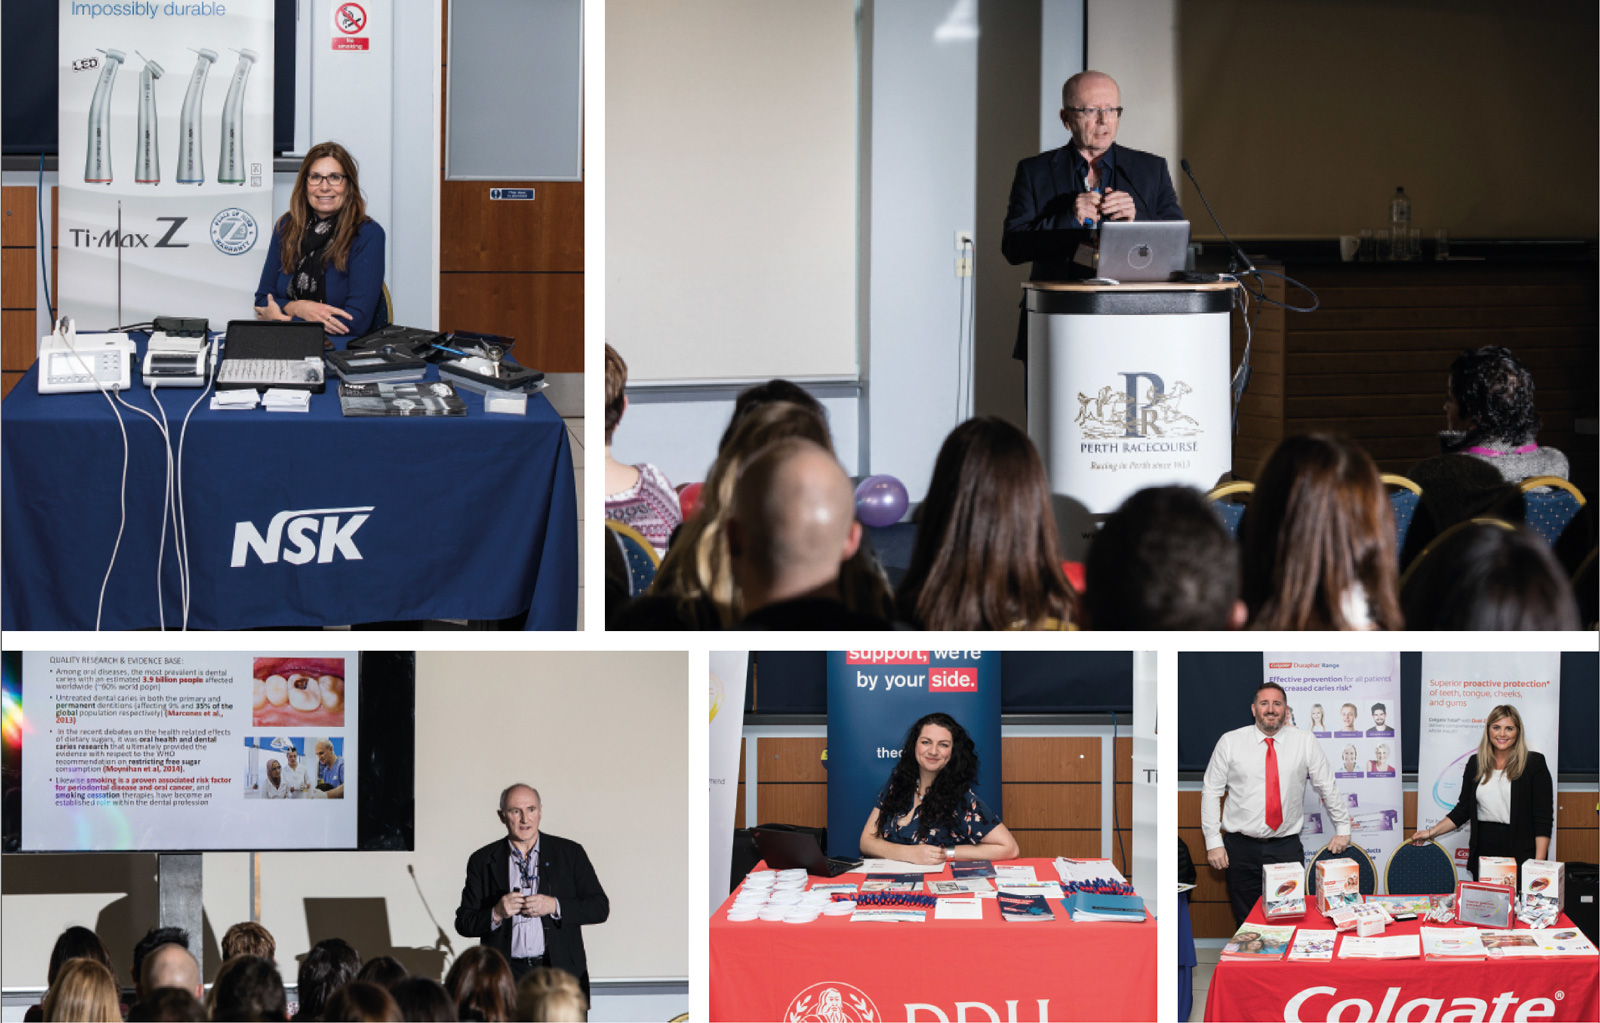 Images from the Blackhills Symposium 2019